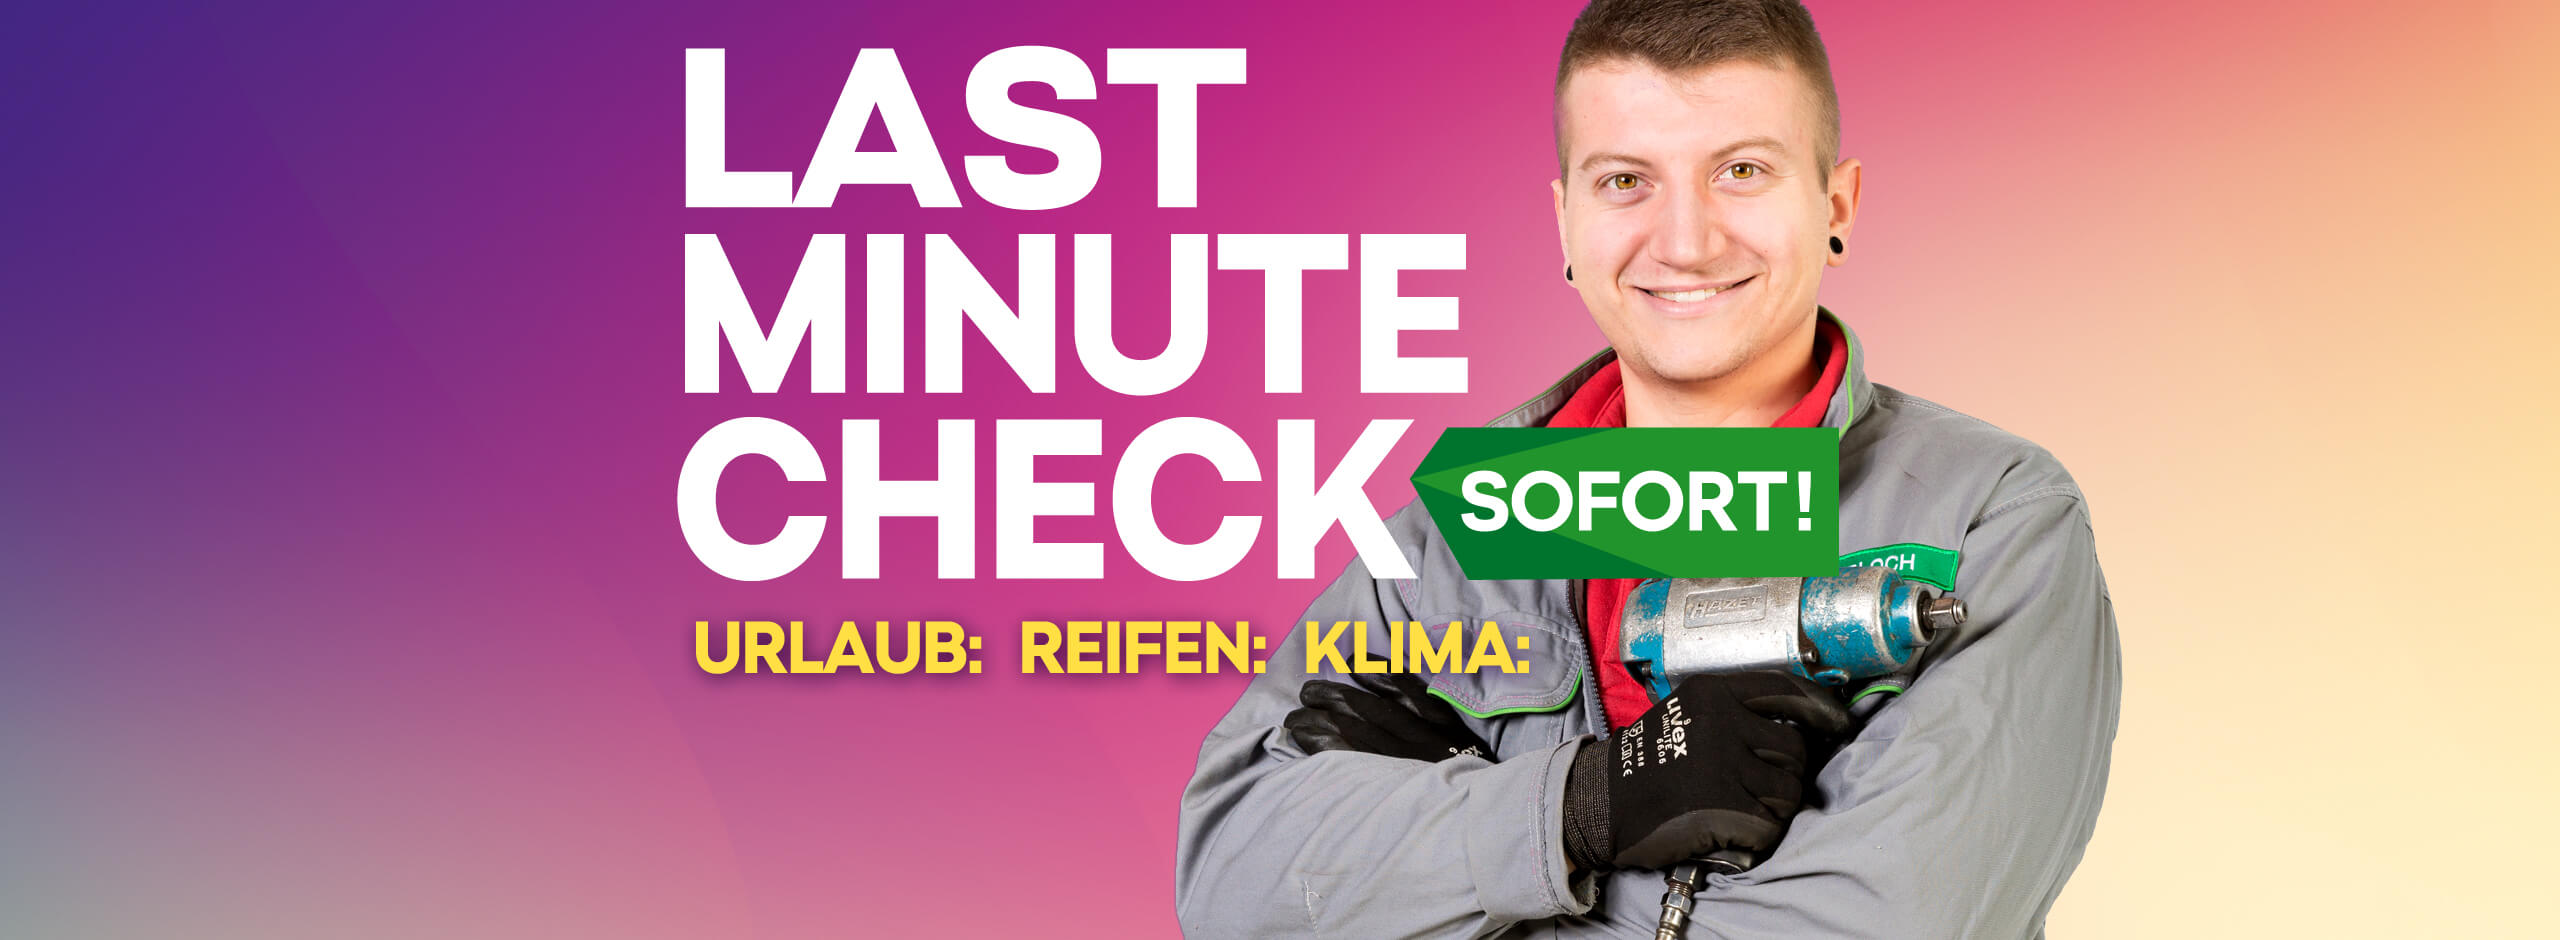 Sofort Last Minute Check – Autohaus BERING